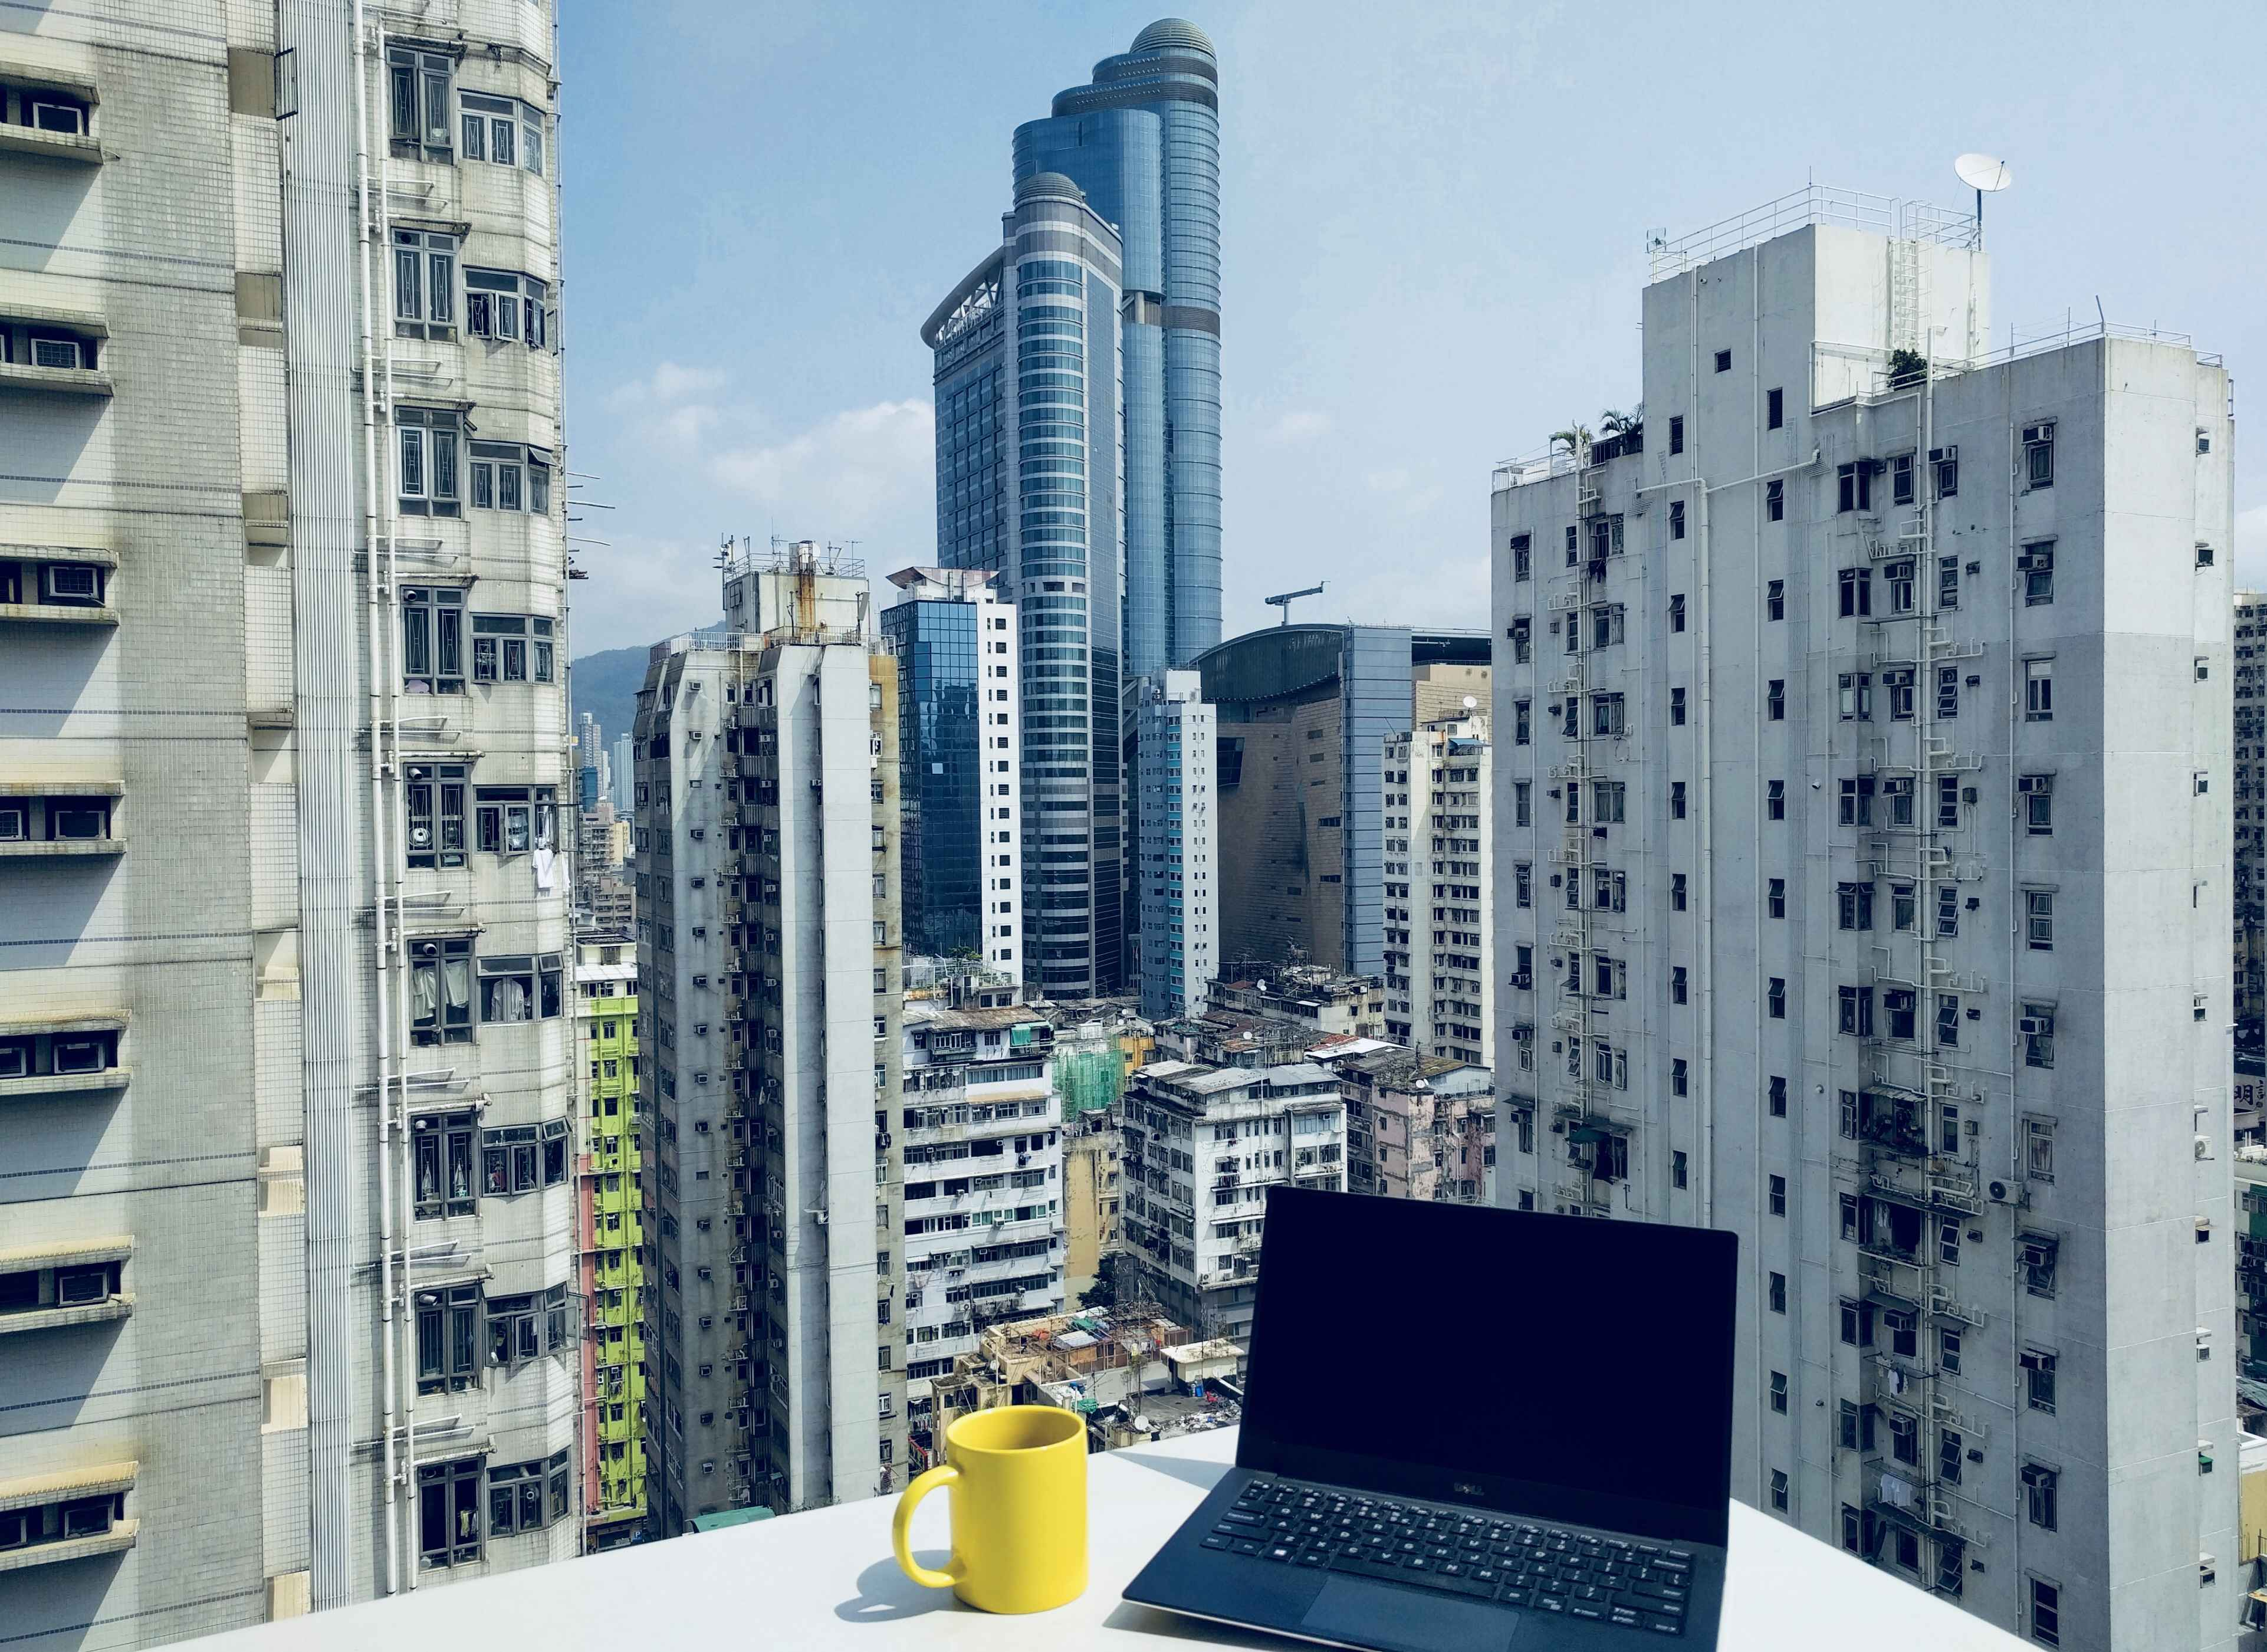 Working on a rooftop in Hong Kong